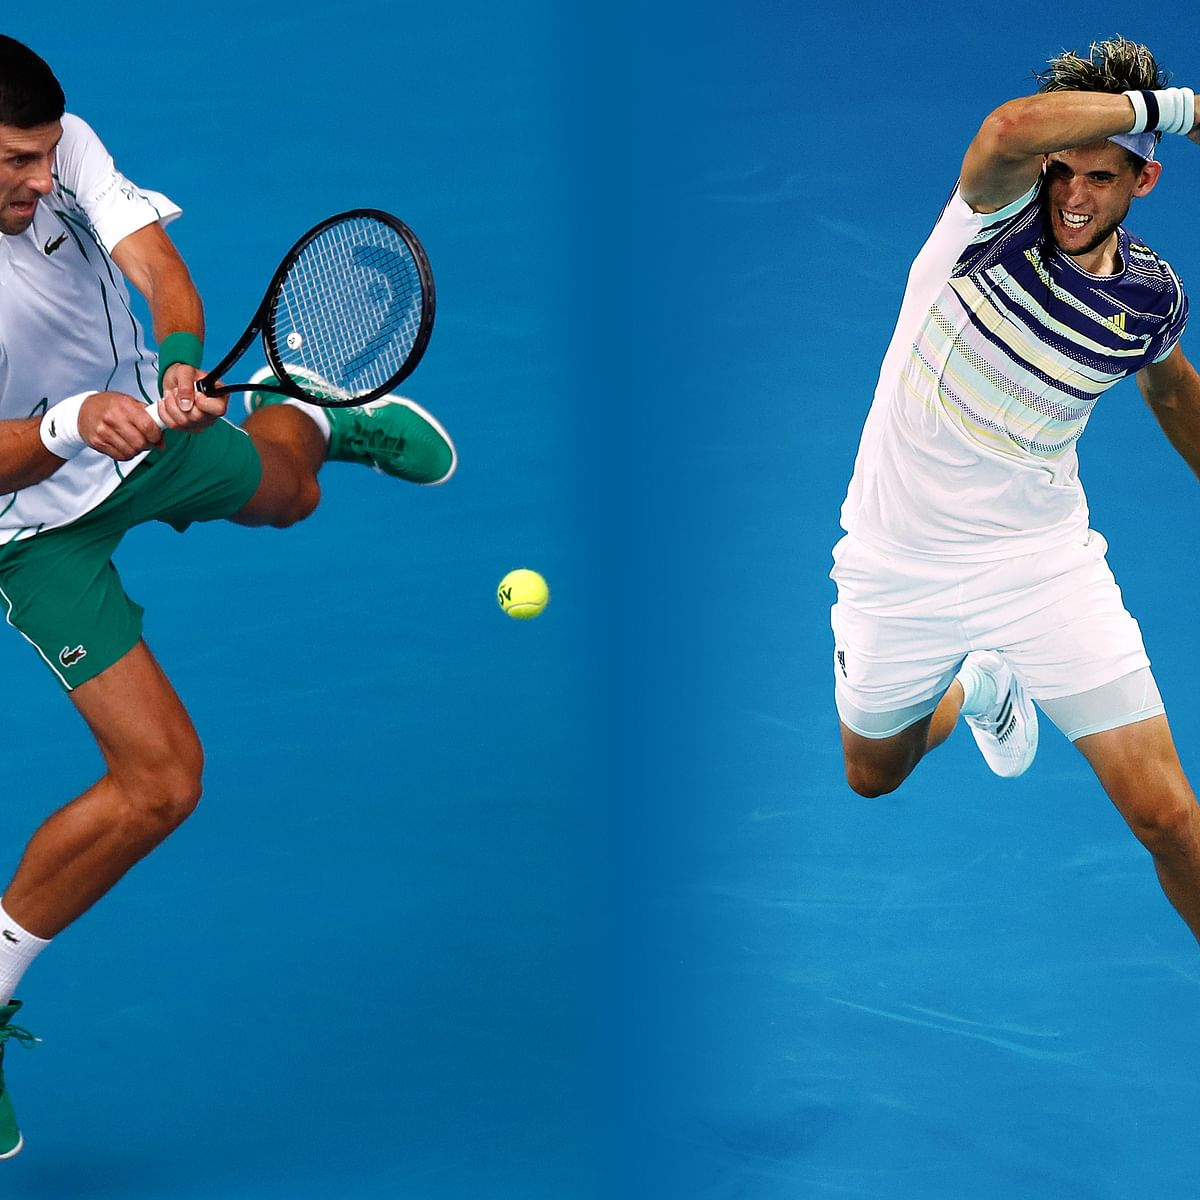 Novak Djokovic vs Dominic Thiem: Where, when and how to watch the Australian Open final match live